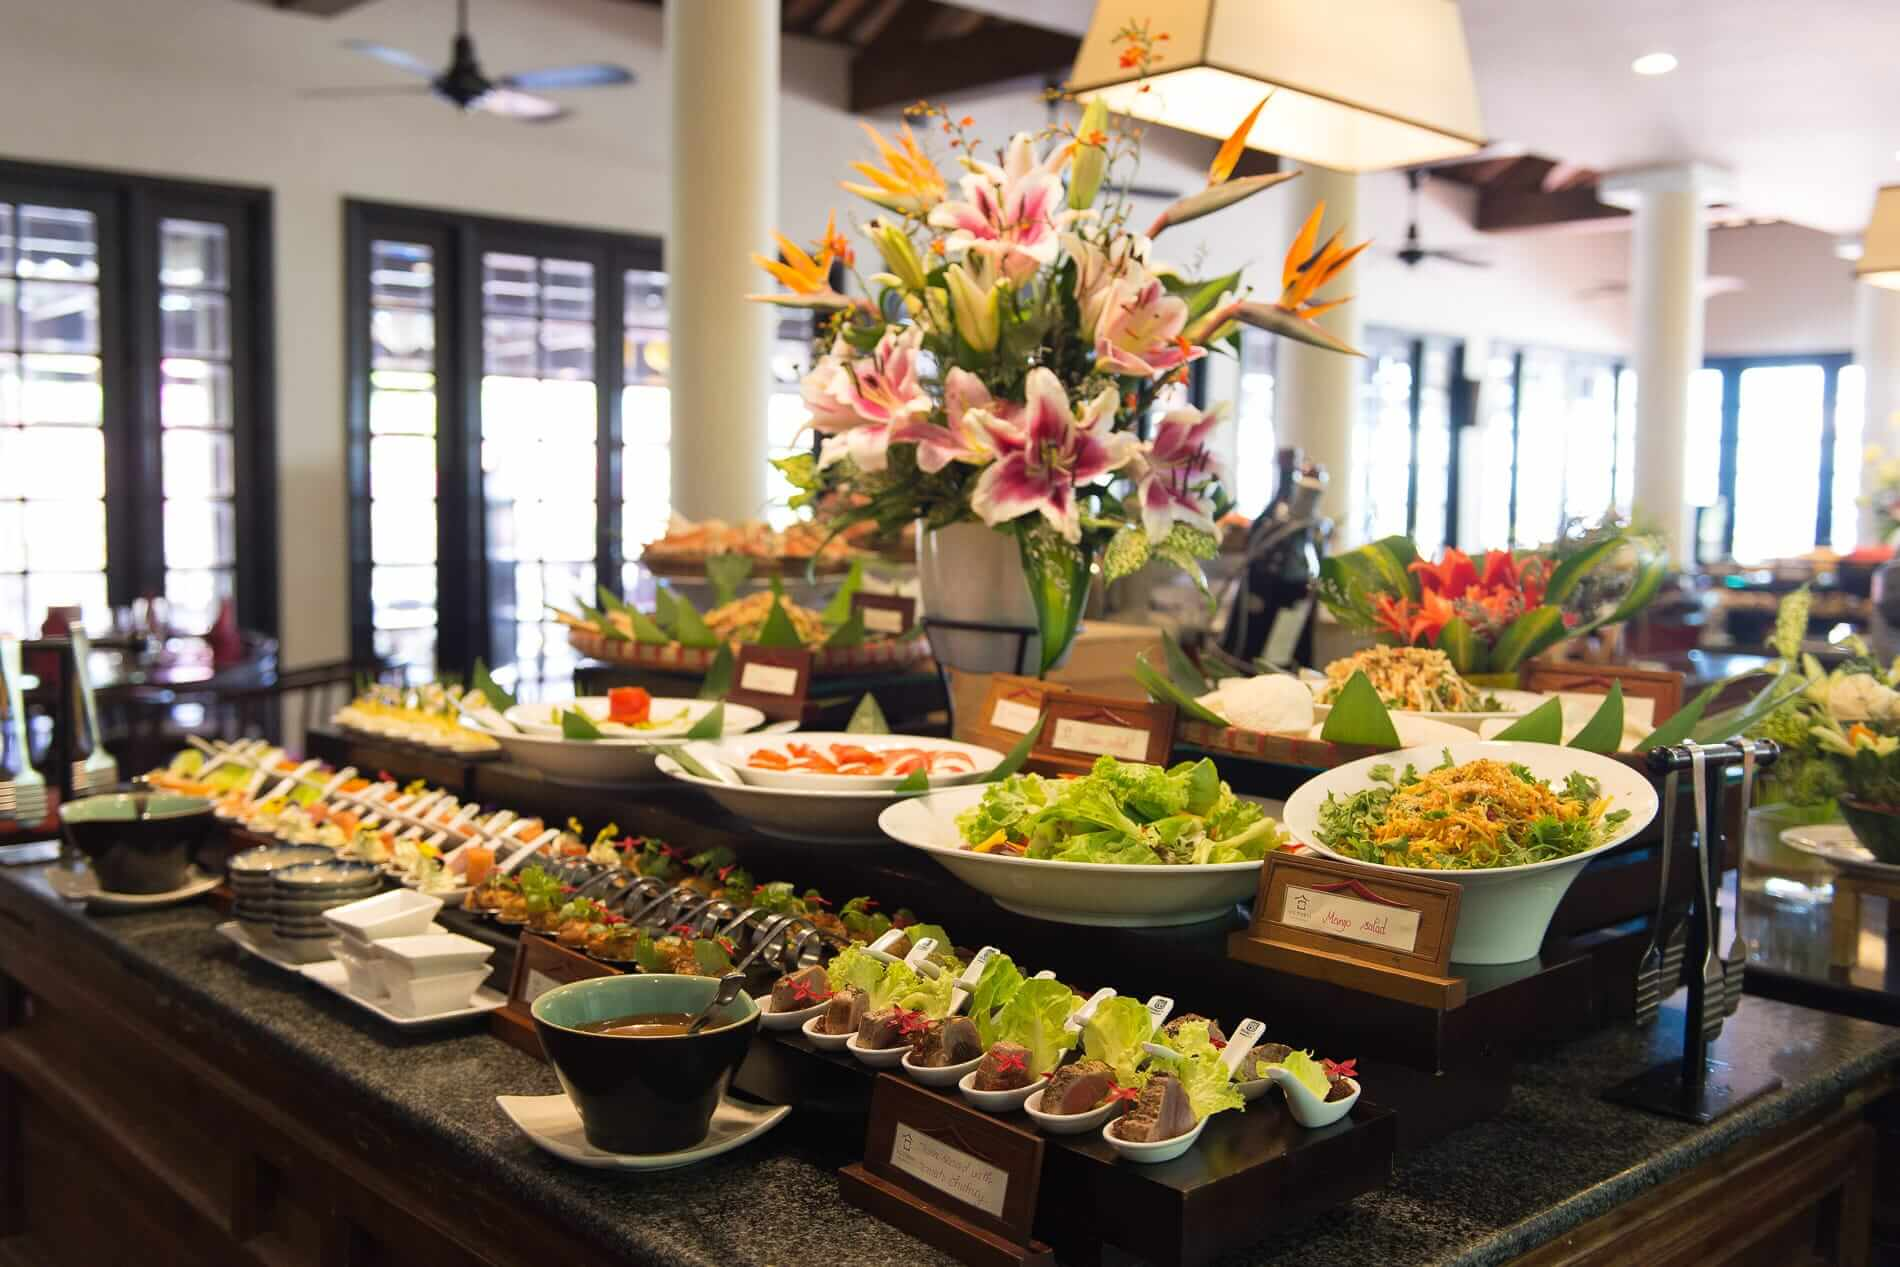 Enjoy breakfast at Victoria Resort Hoi An